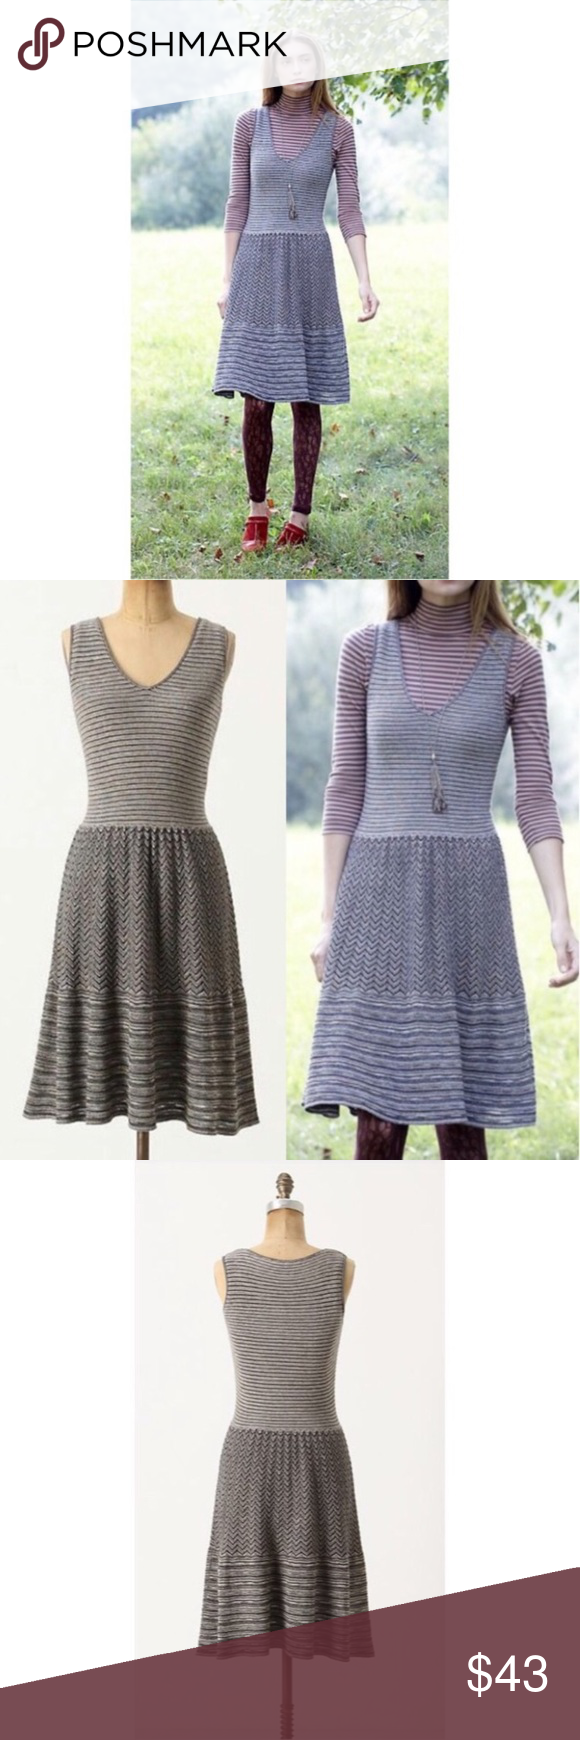 6cefabab1f3f2 Anthropologie Test Pattern Sweater Dress EUC Layered and lined with layers  of lines, this silver